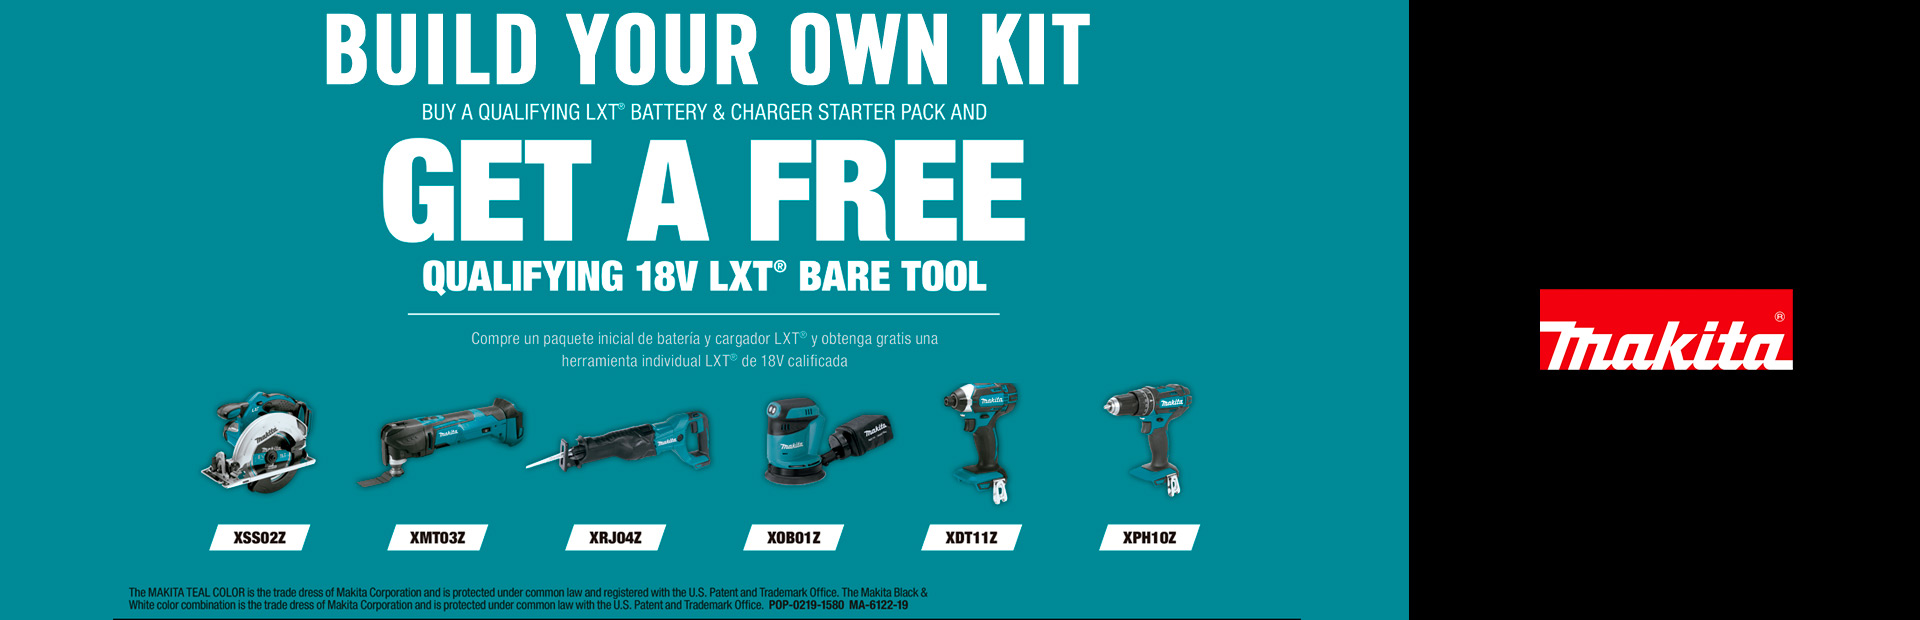 Makita: Build Your Own Kit